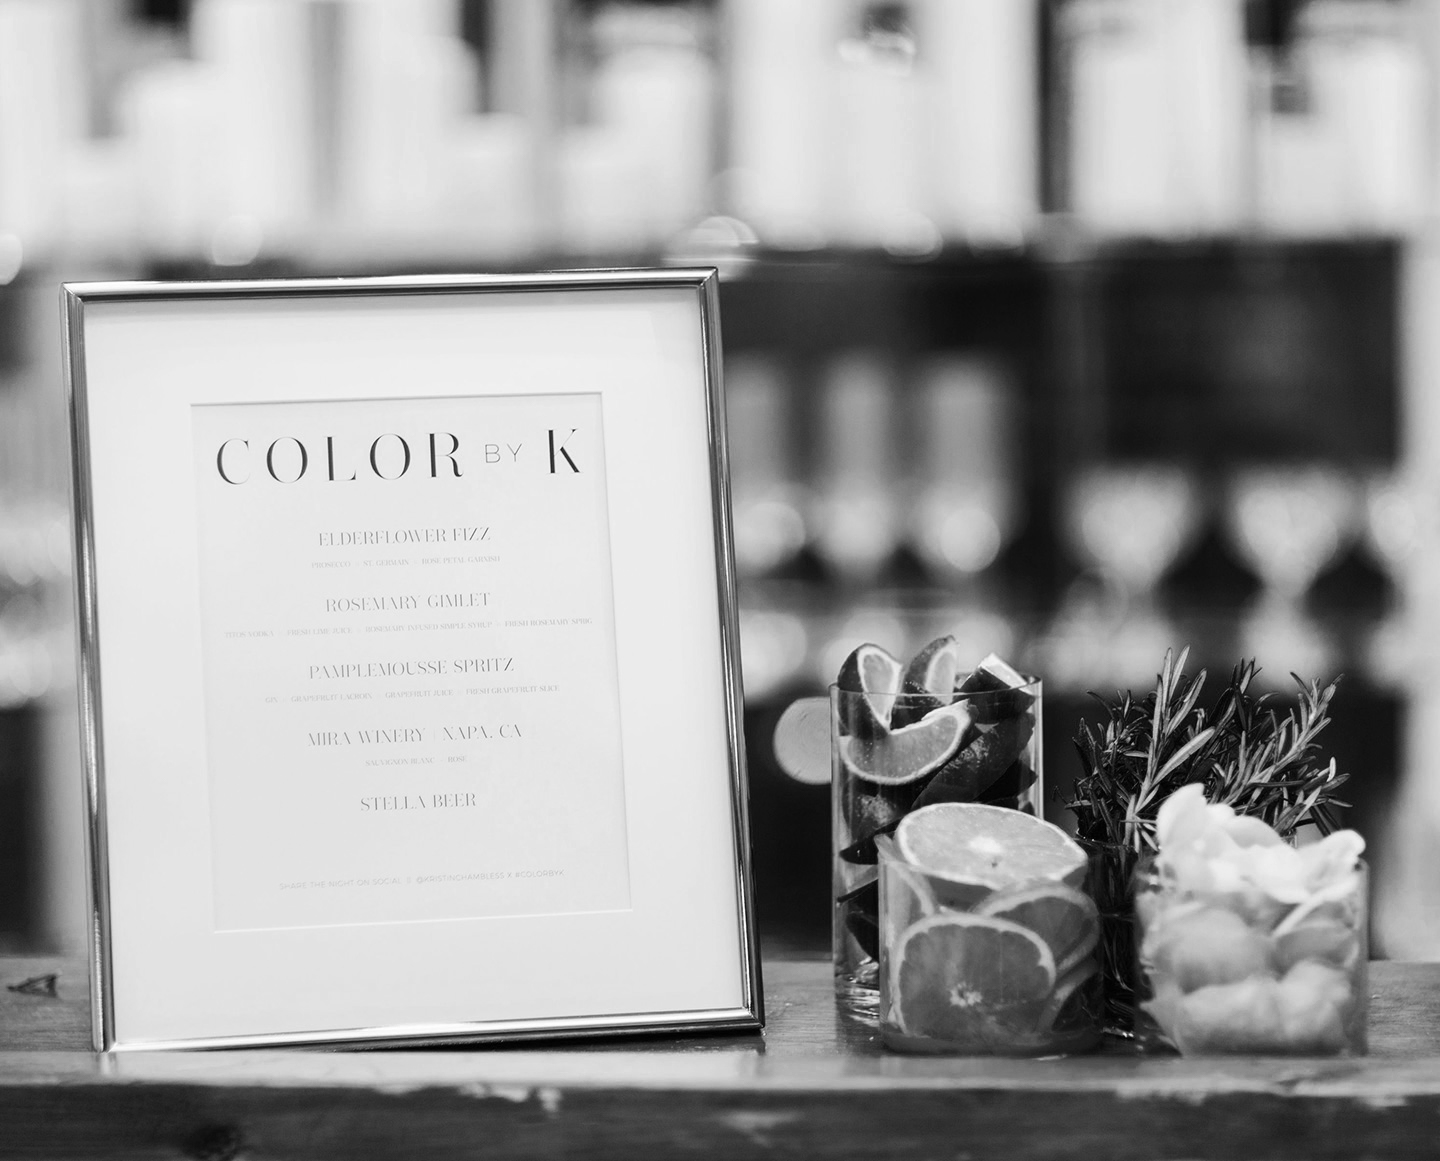 COLOR by K Launch Party